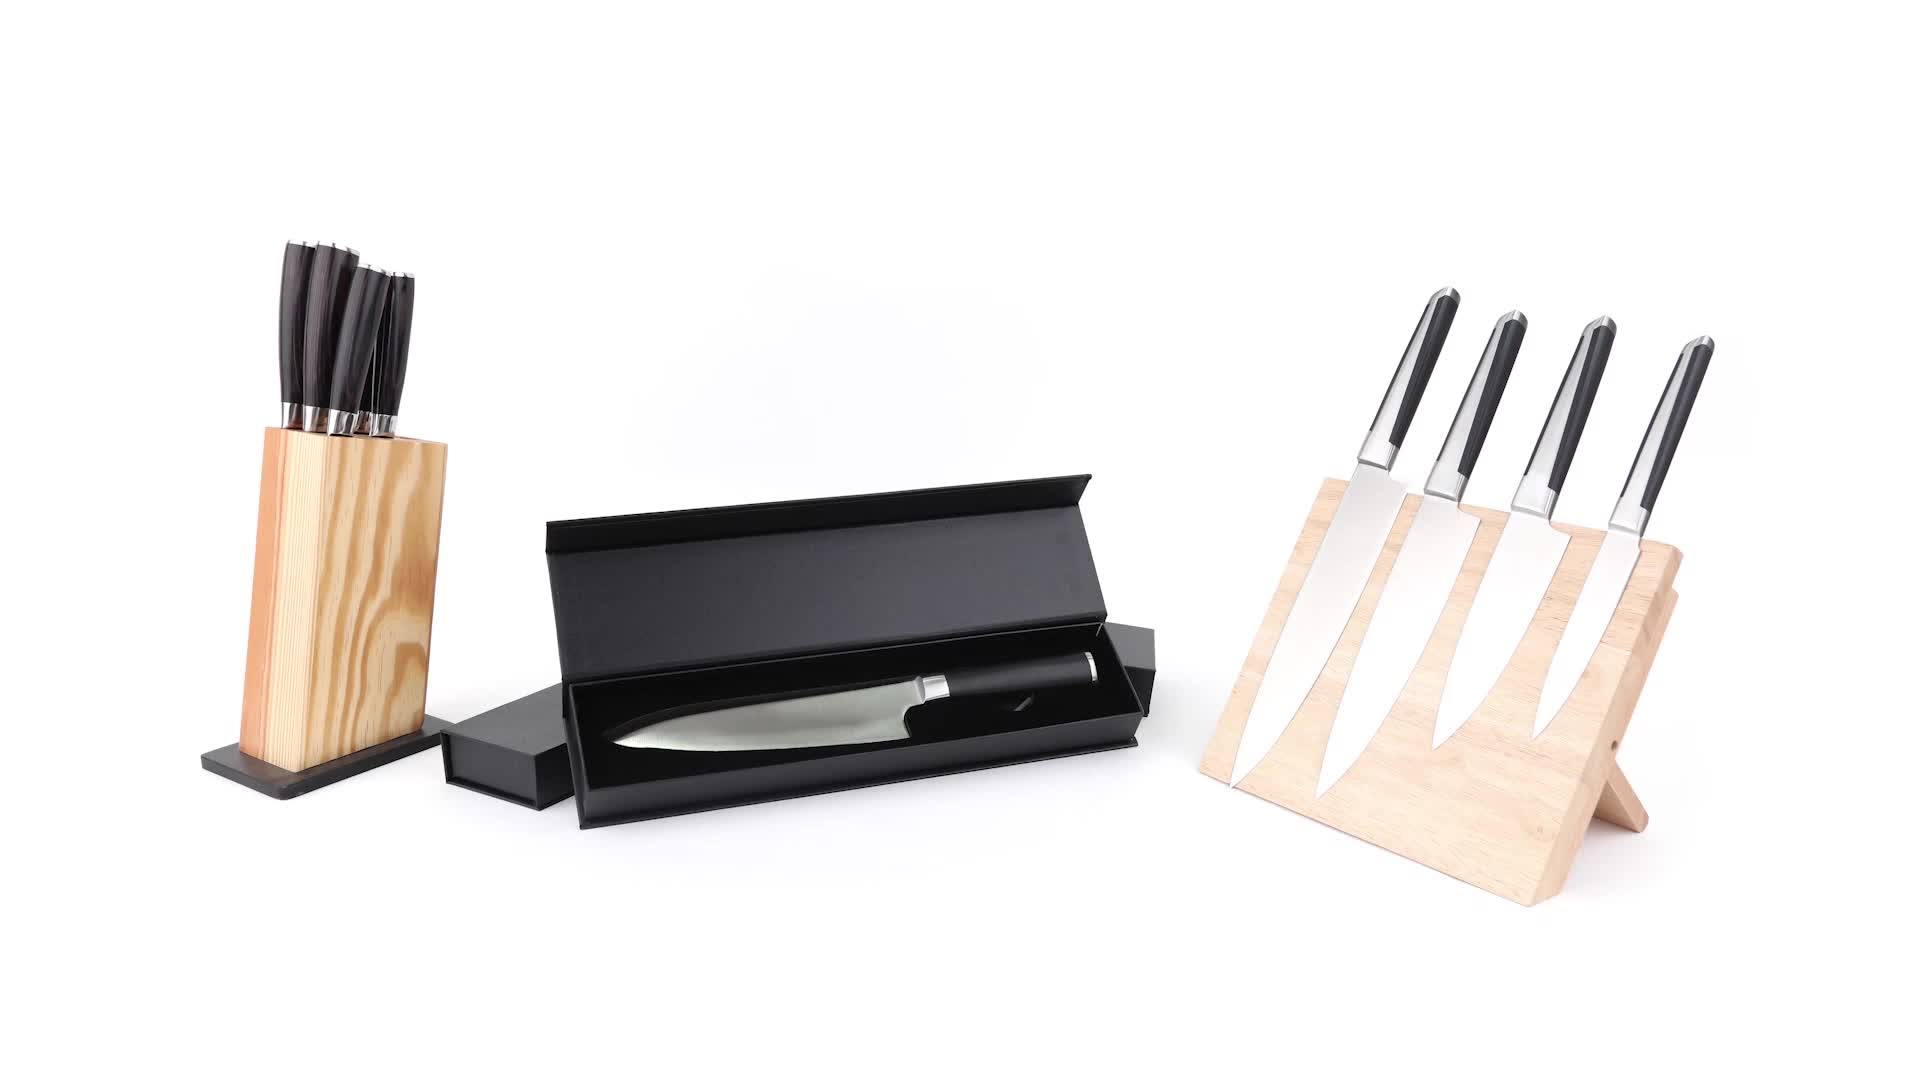 Chinese classic royal handmade sharp stainless steel chef knives block kitchen knife set for kitchen